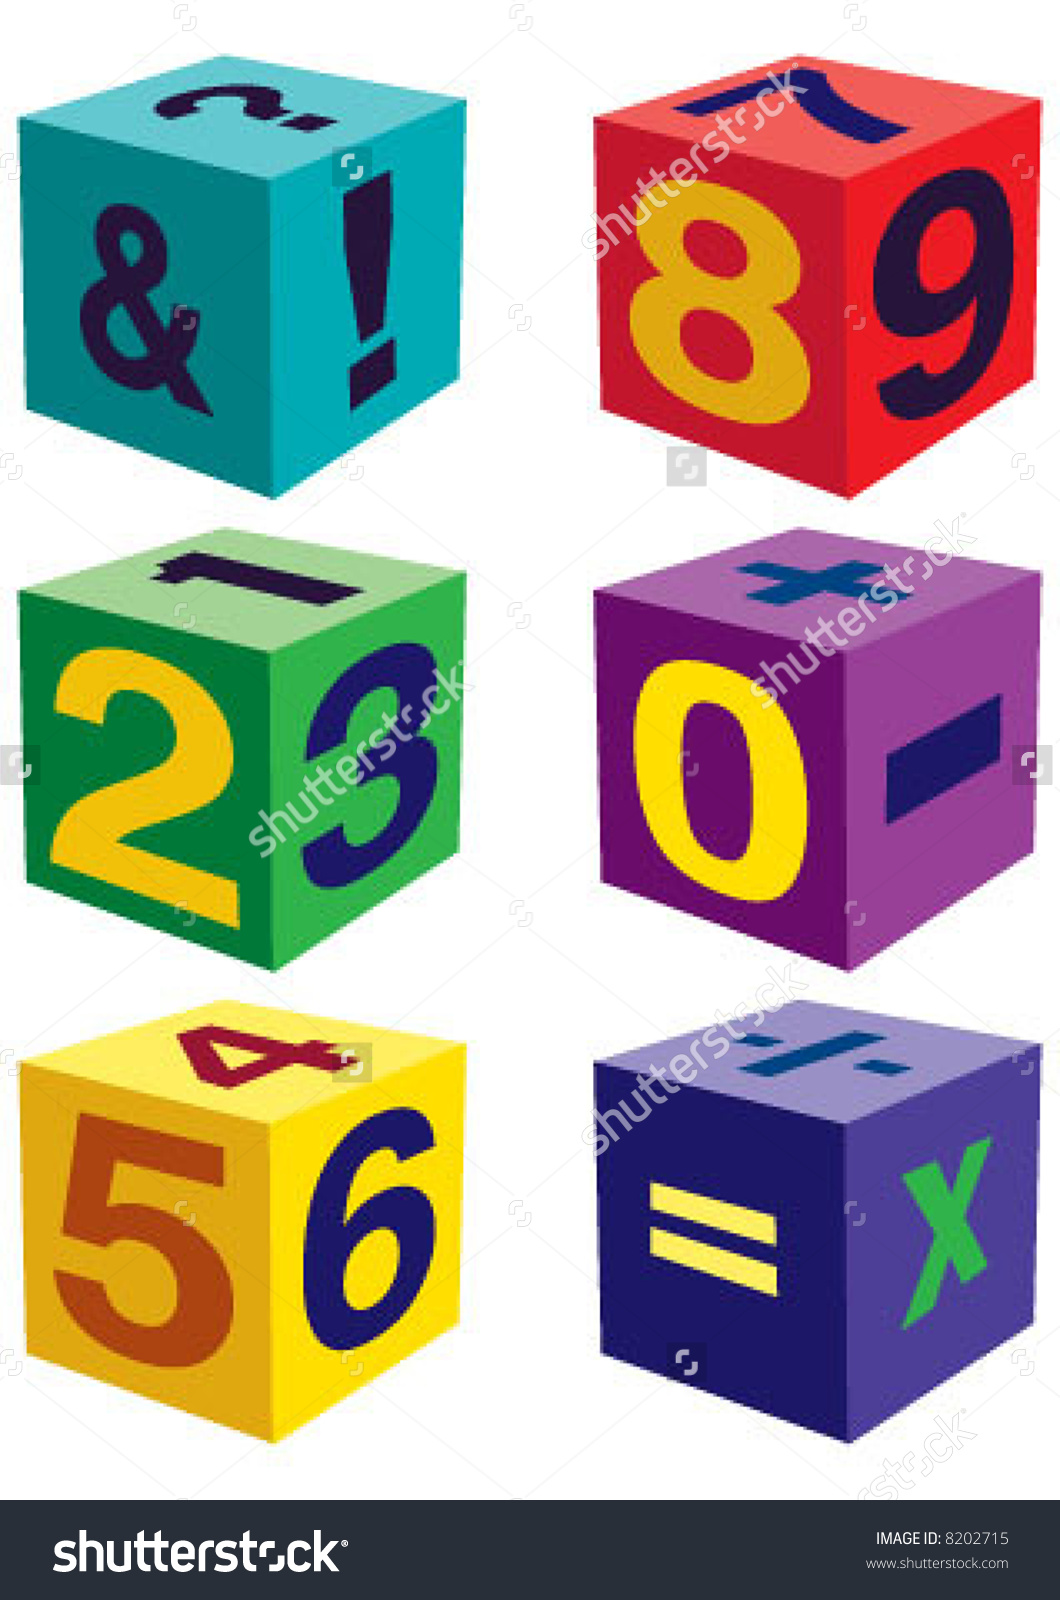 Number Toys In Cube Shape Stock Vector Illustration 8202715.